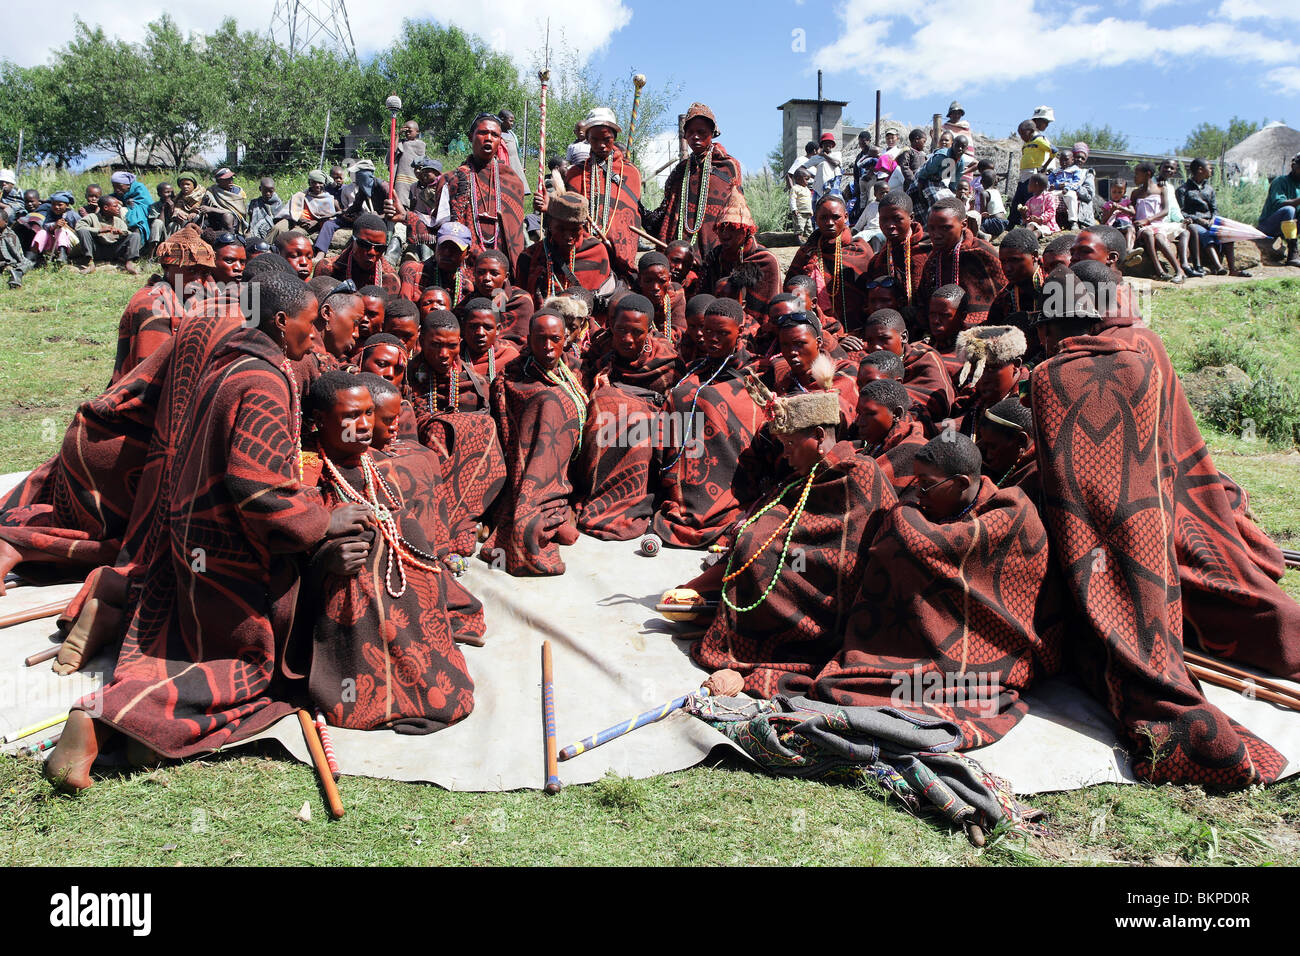 Lesotho: Redly made up young men celebrate an initiation celebration their admission into the world of adult men. - Stock Image